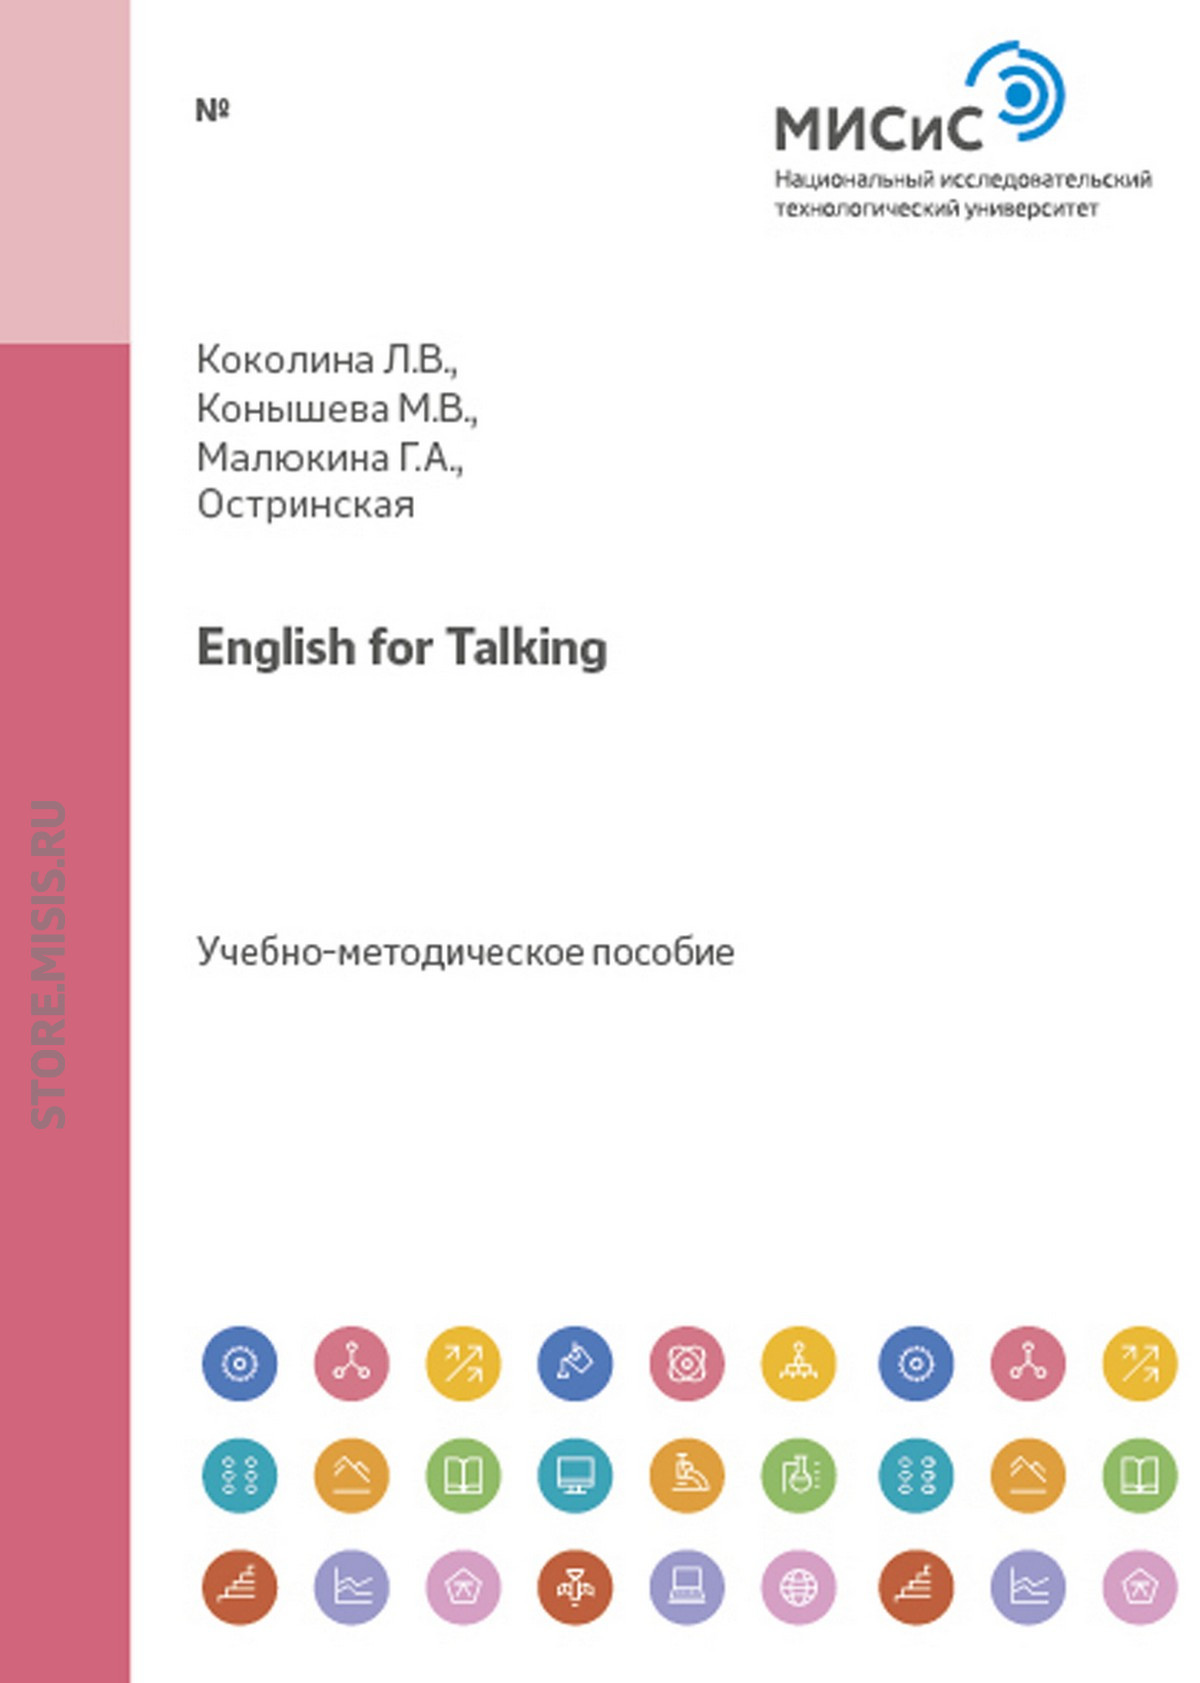 Л. В. Коколина English for Talking продуктивная коммуникация лингвистика результативности